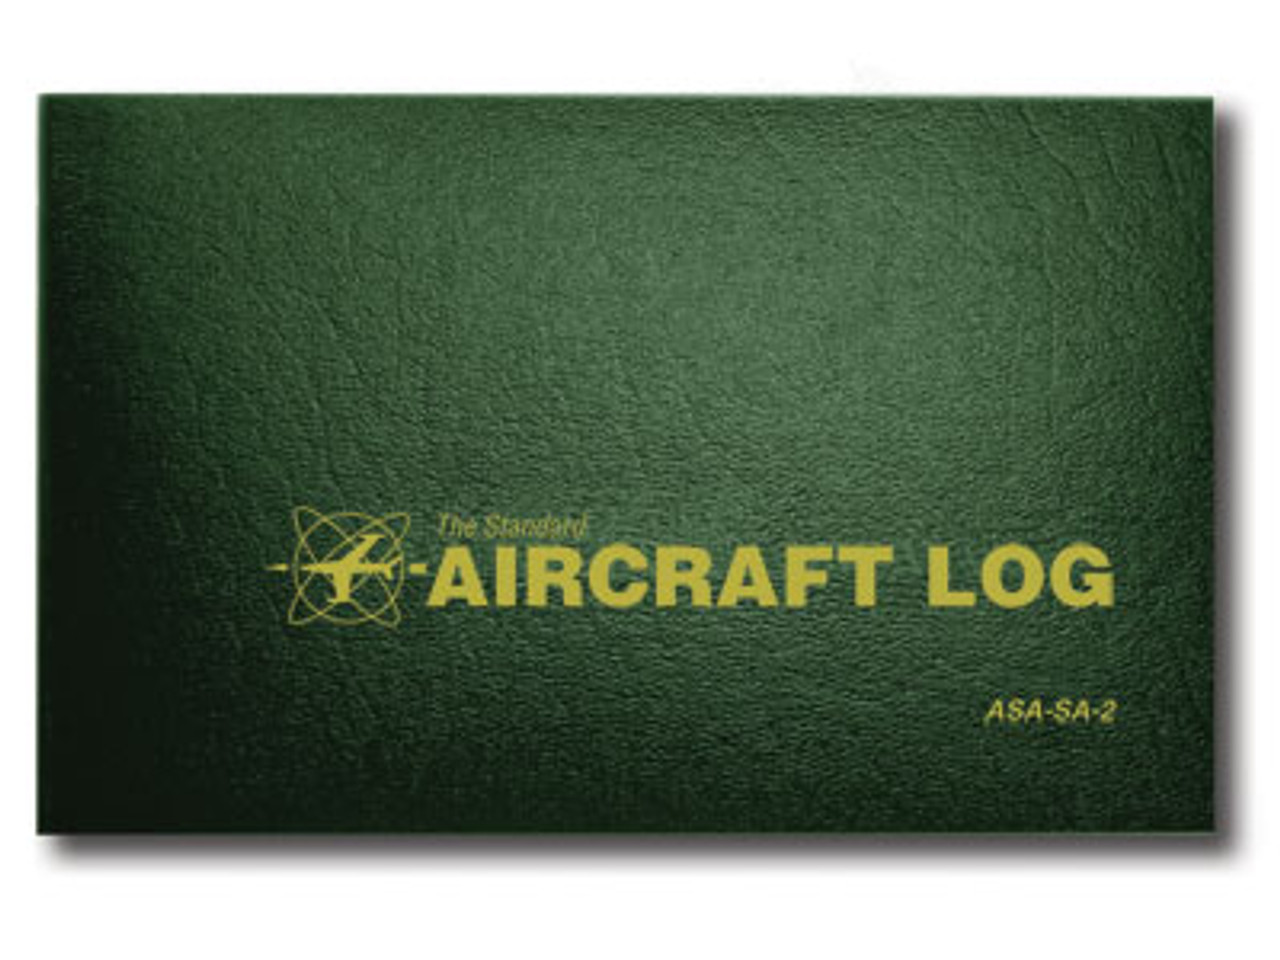 Complete Aircraft Maintenance Logbook Combo - Airframe, Engine, Avionics, Prop